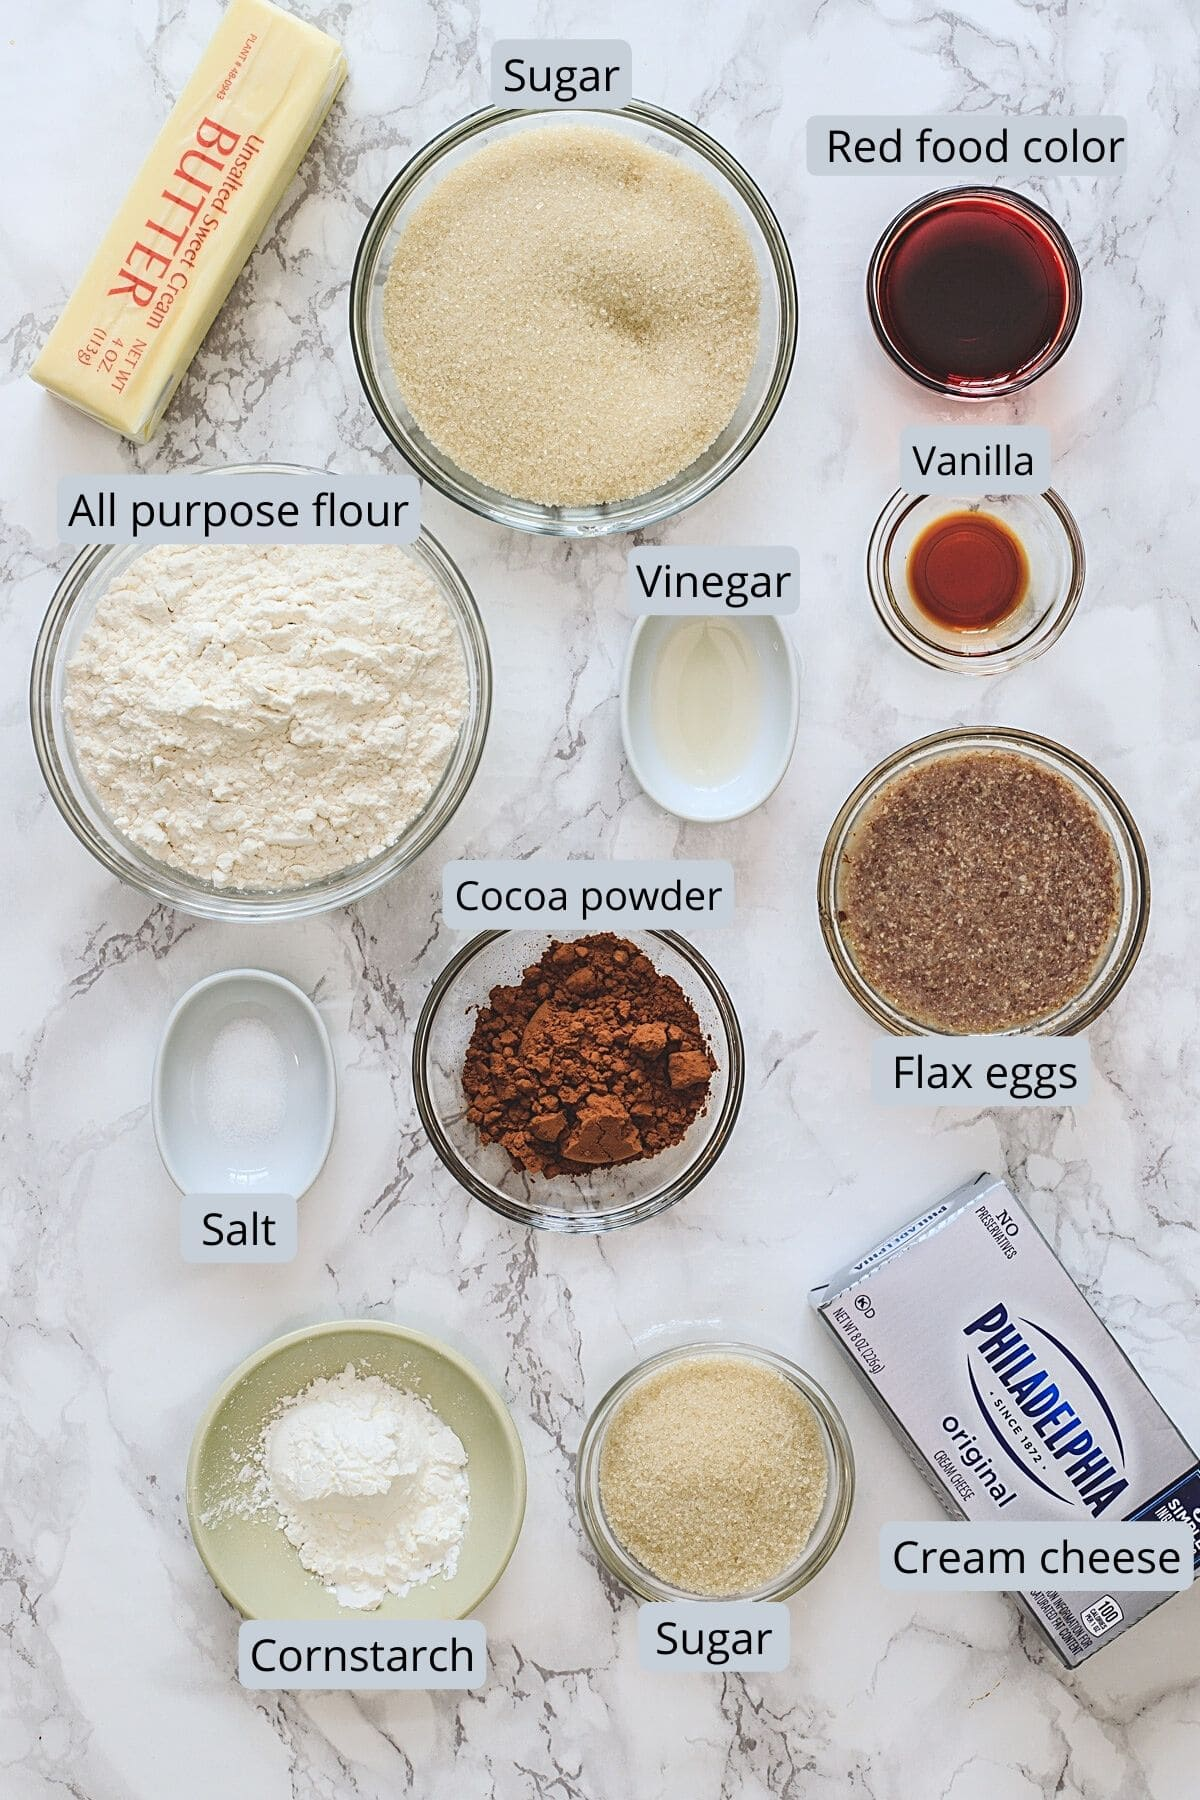 Ingredients used in red velvet brownies includes flour, sugar, cocoa powder, butter, cream cheese, cornstarch, food color, vanilla, vinegar, flax eggs.